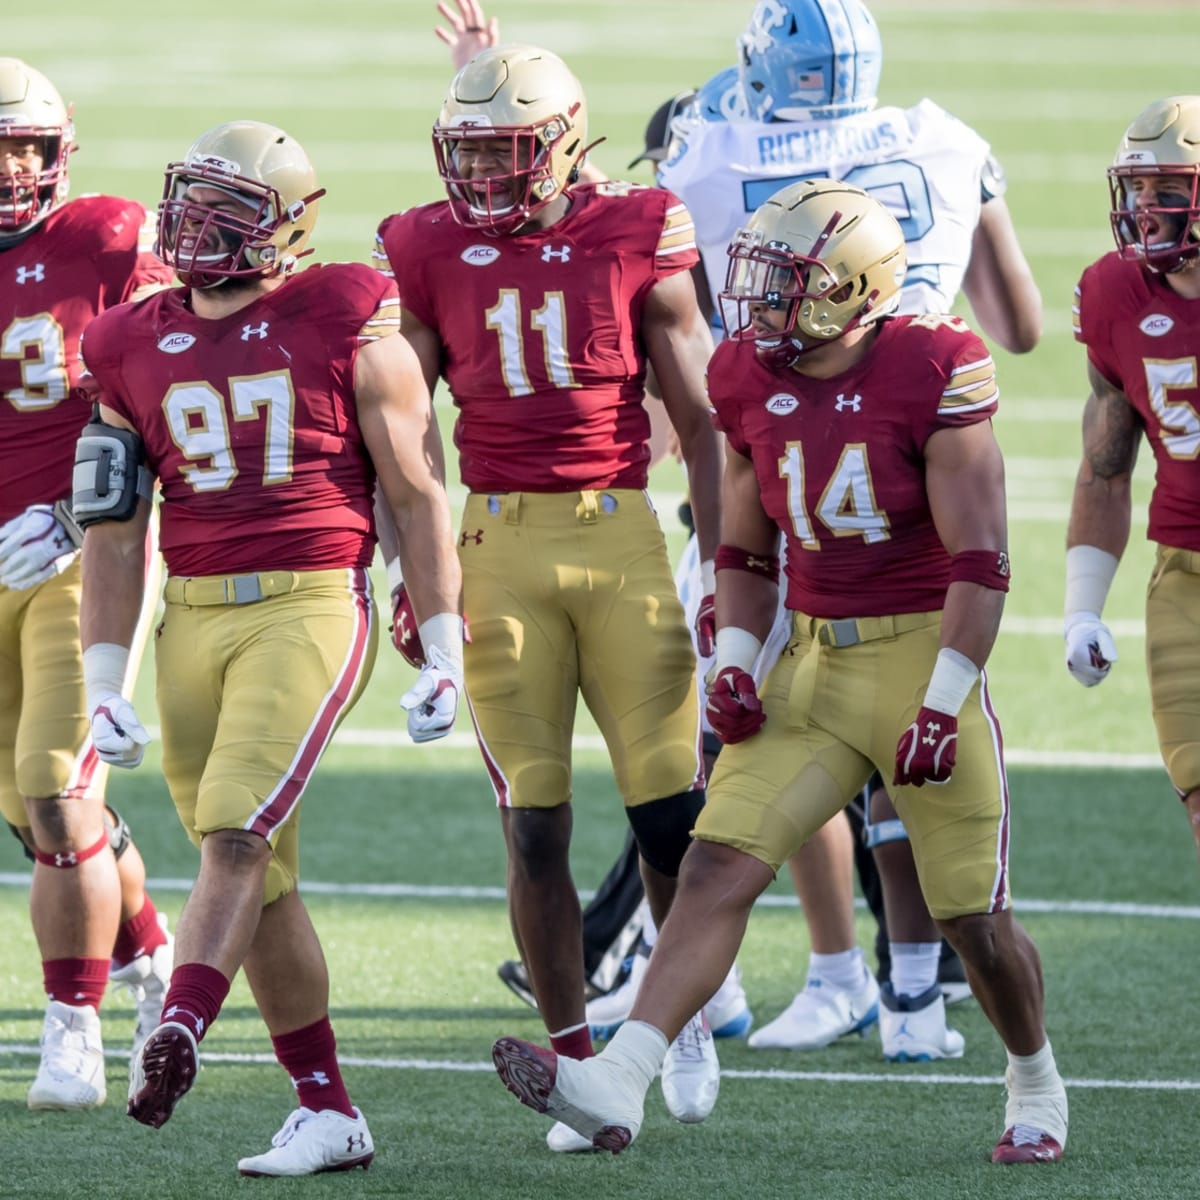 Boston College Vs 23 Virginia Tech Final Thoughts And Predictions Sports Illustrated Boston College Eagles News Analysis And More